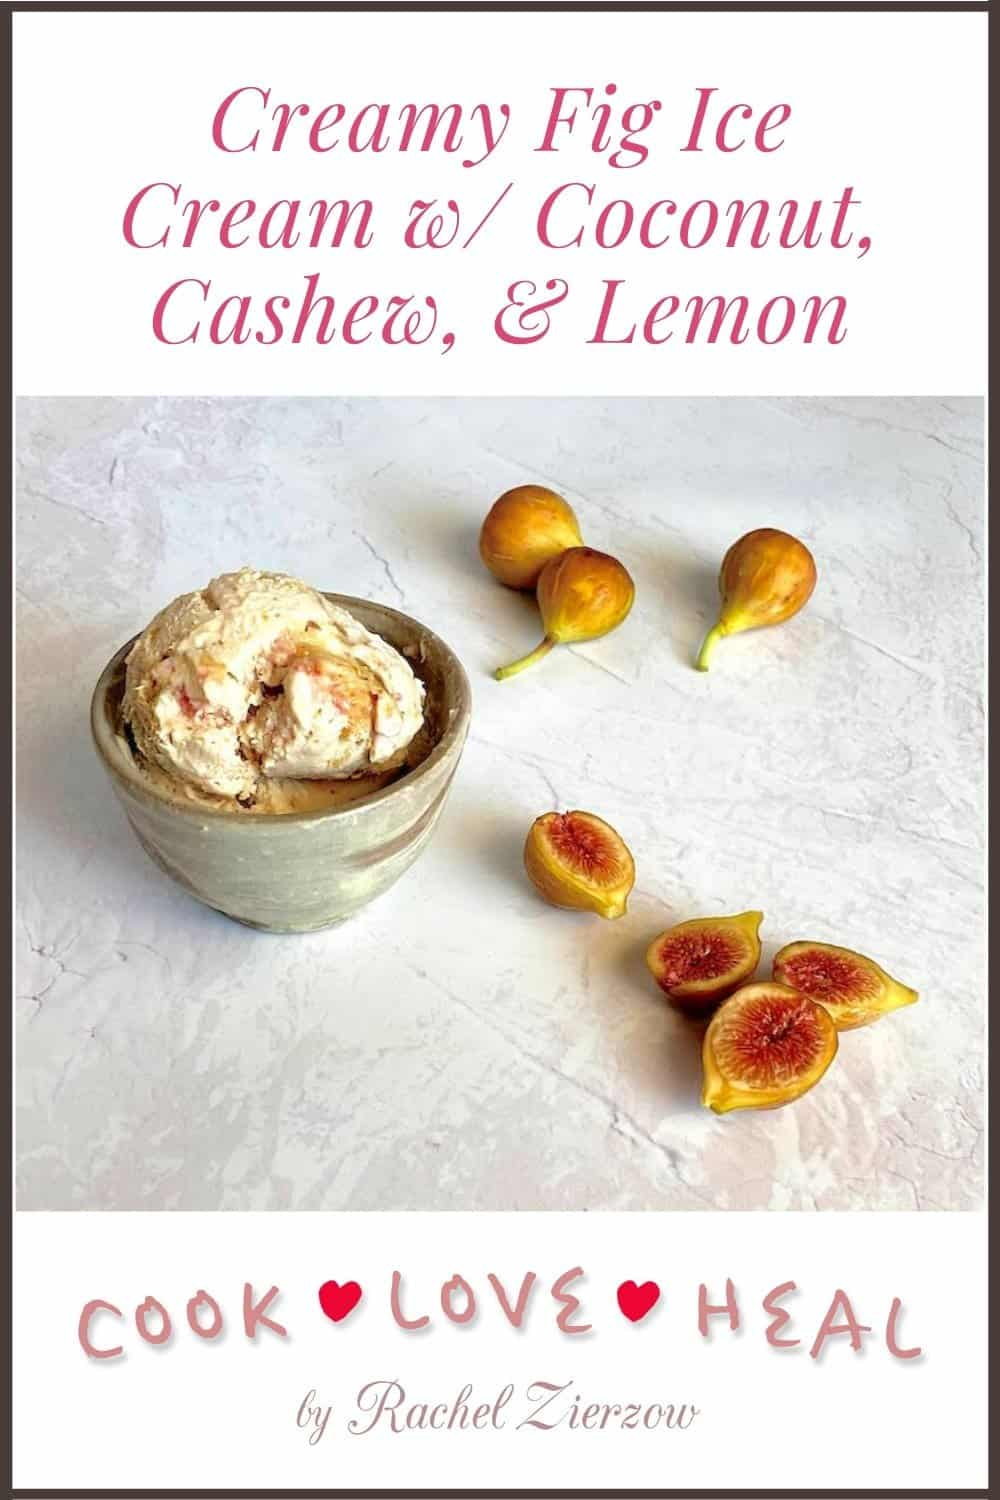 Creamy Fig Ice Cream w Coconut, Cashew, & Lemon